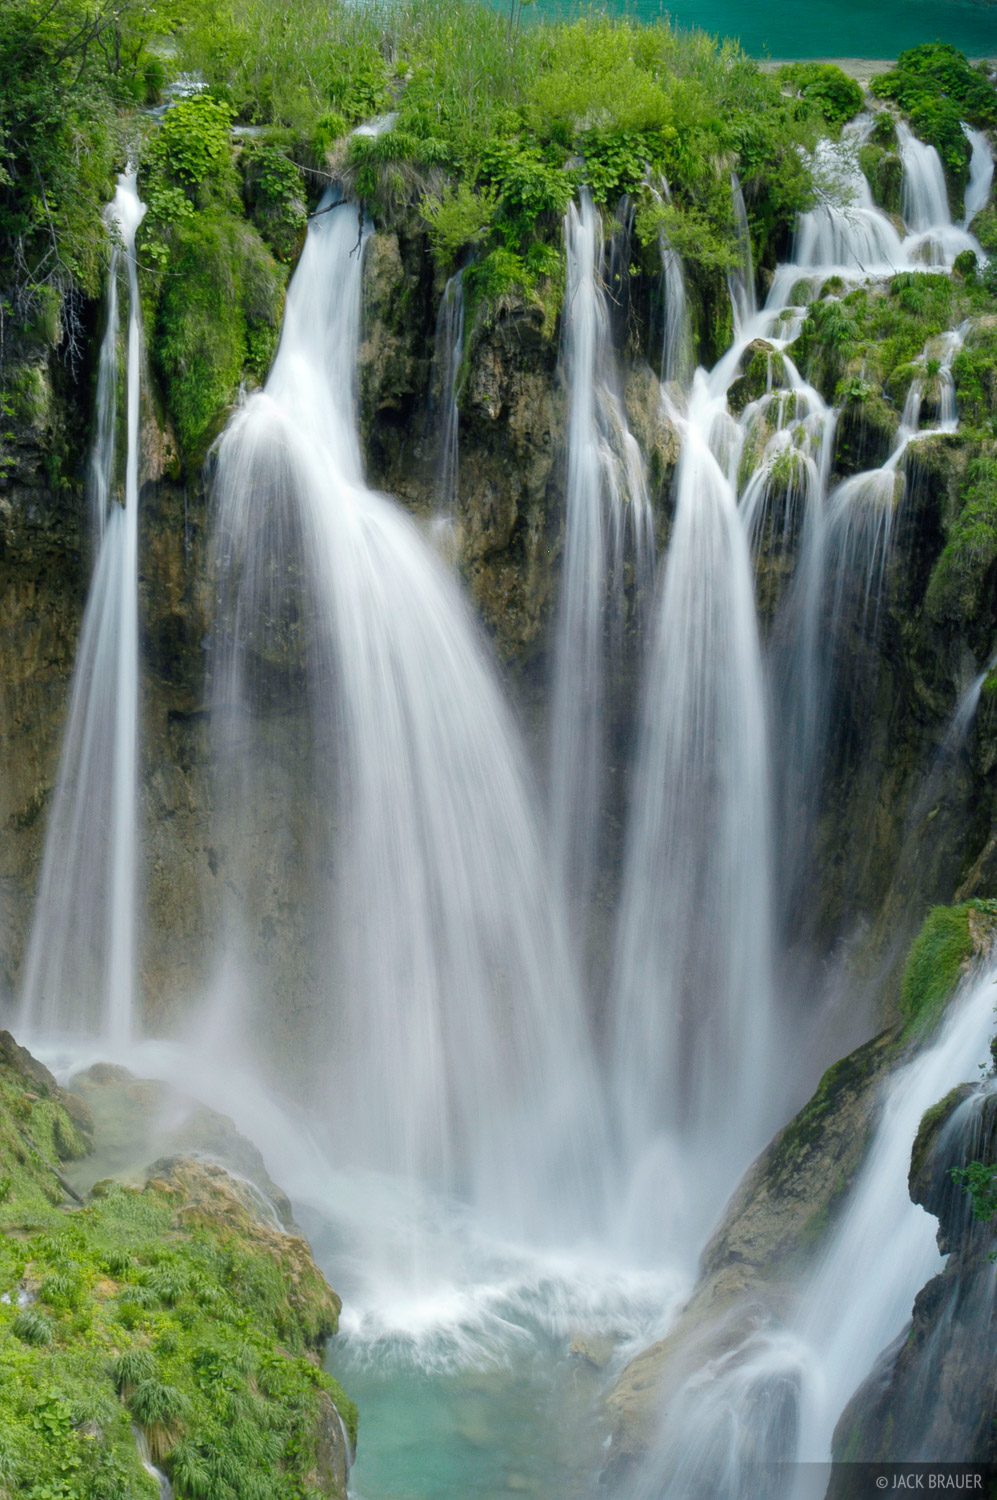 waterfalls, Plitvicka Jezera, Croatia, photo